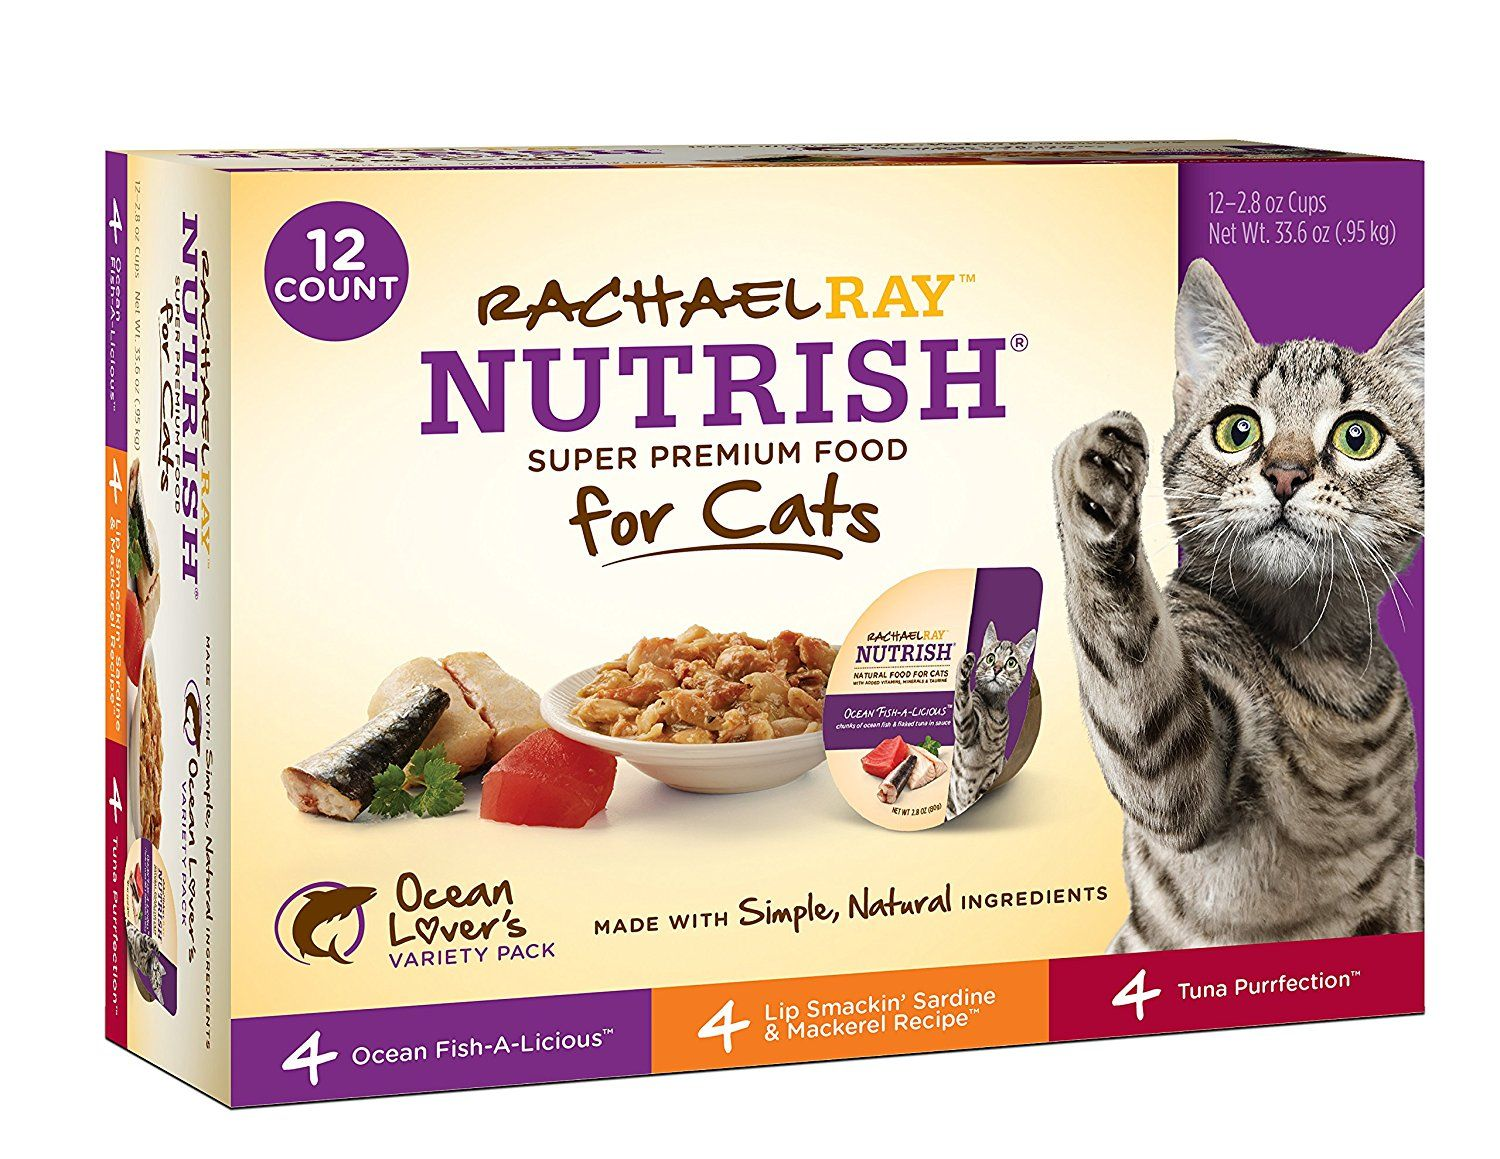 Rachael Ray Nutrish Natural Wet Cat Food, 2.8 oz tubs